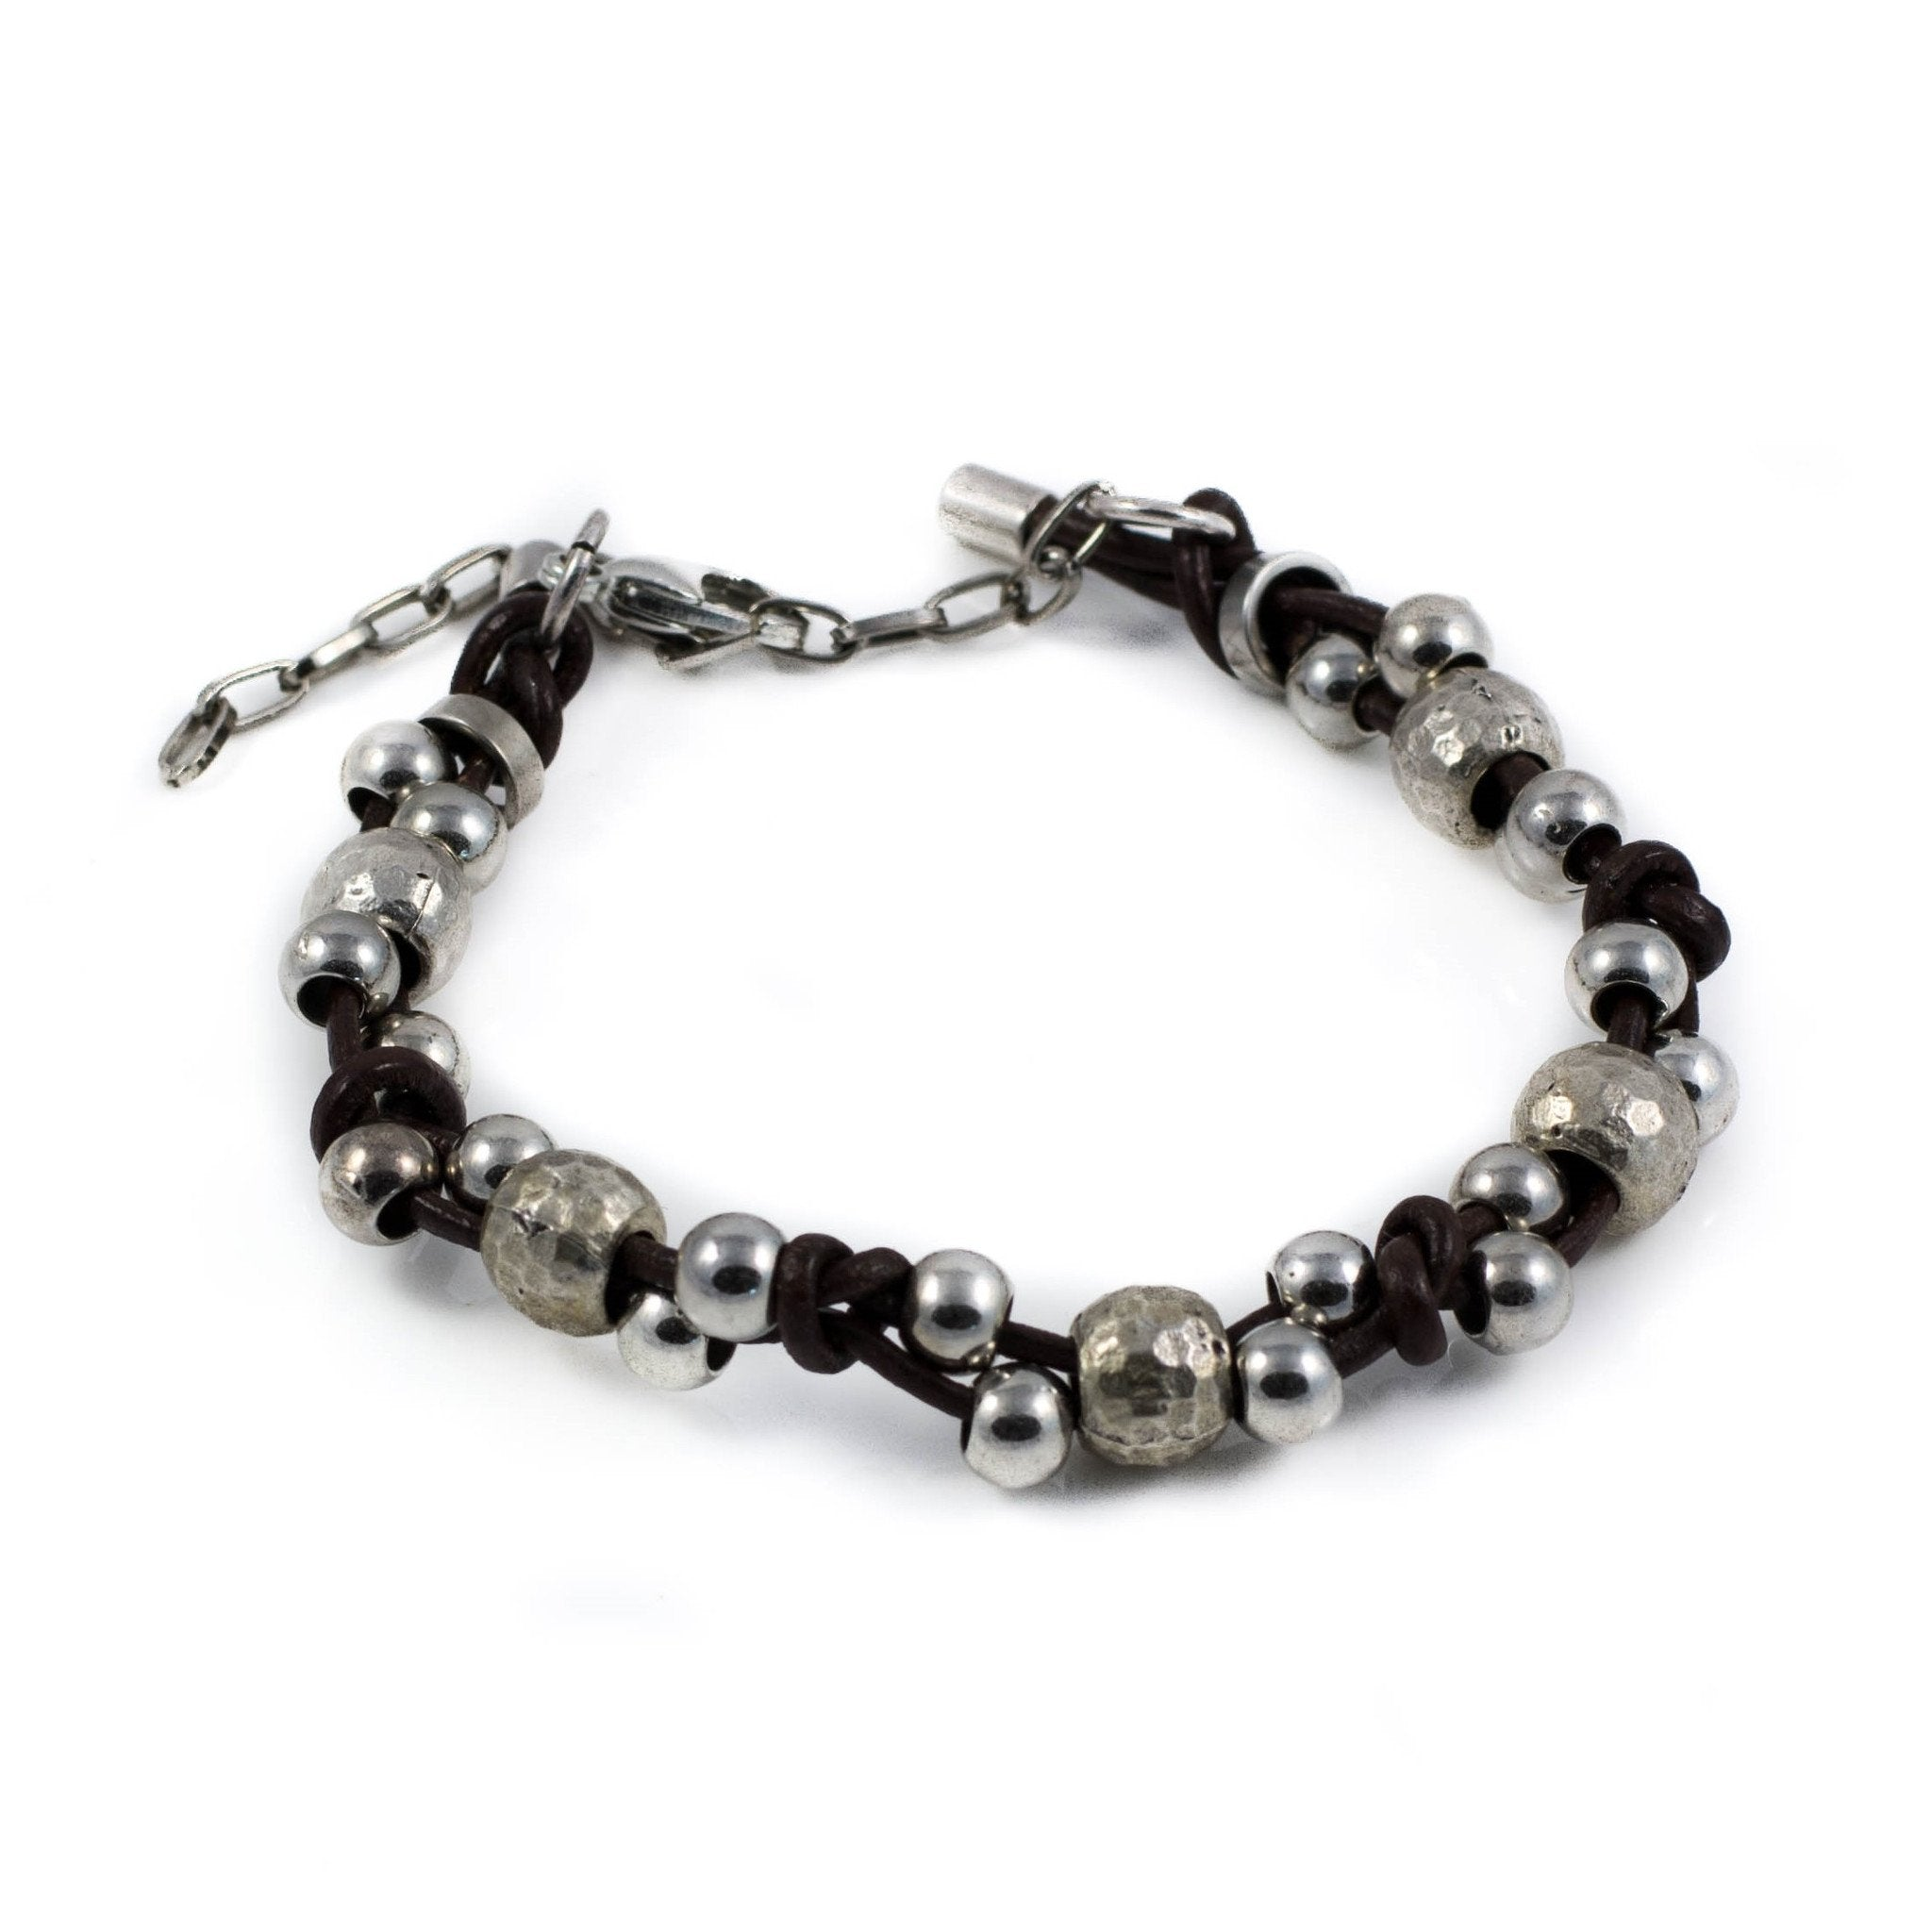 pandora for com dhgate murano product big charm glass bracelet lampwork hole from silver wholesales core beads european